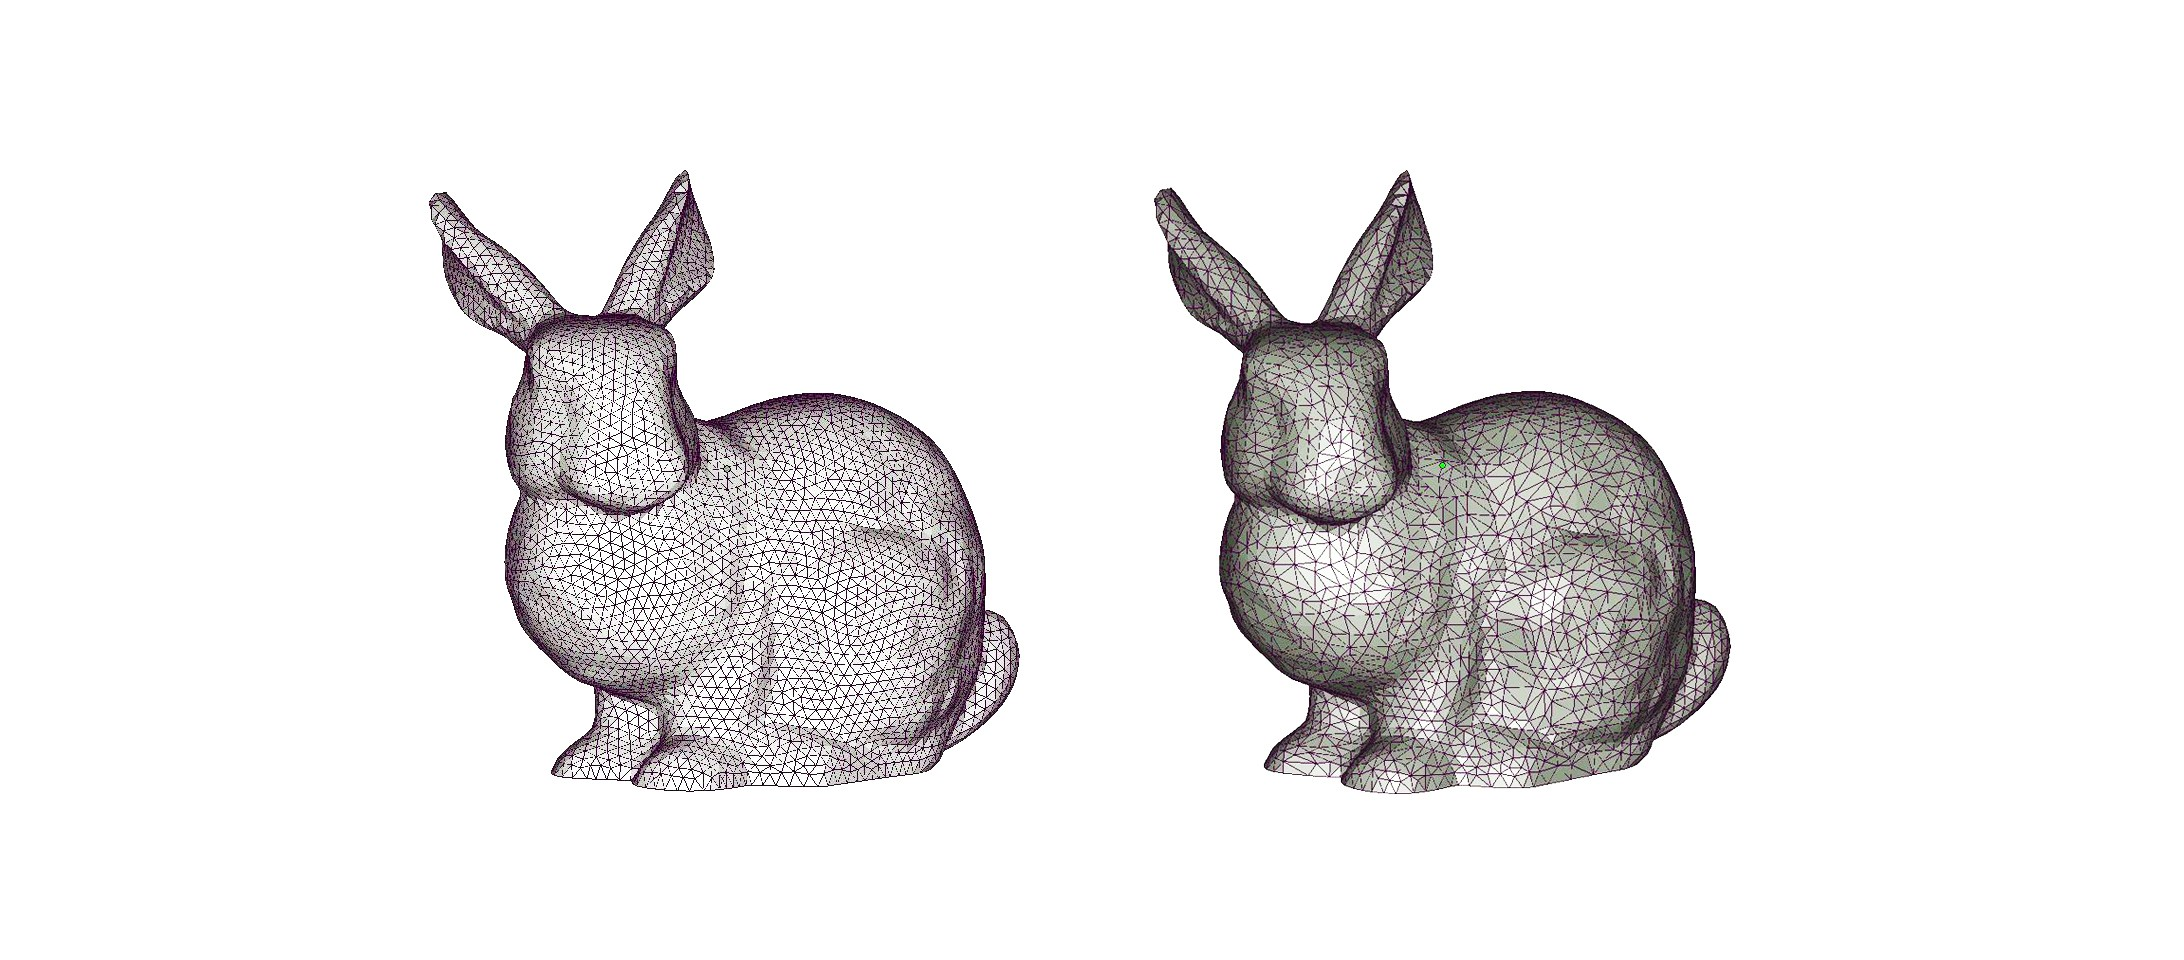 Do You Have the Right 3D File Size for 3D printing?